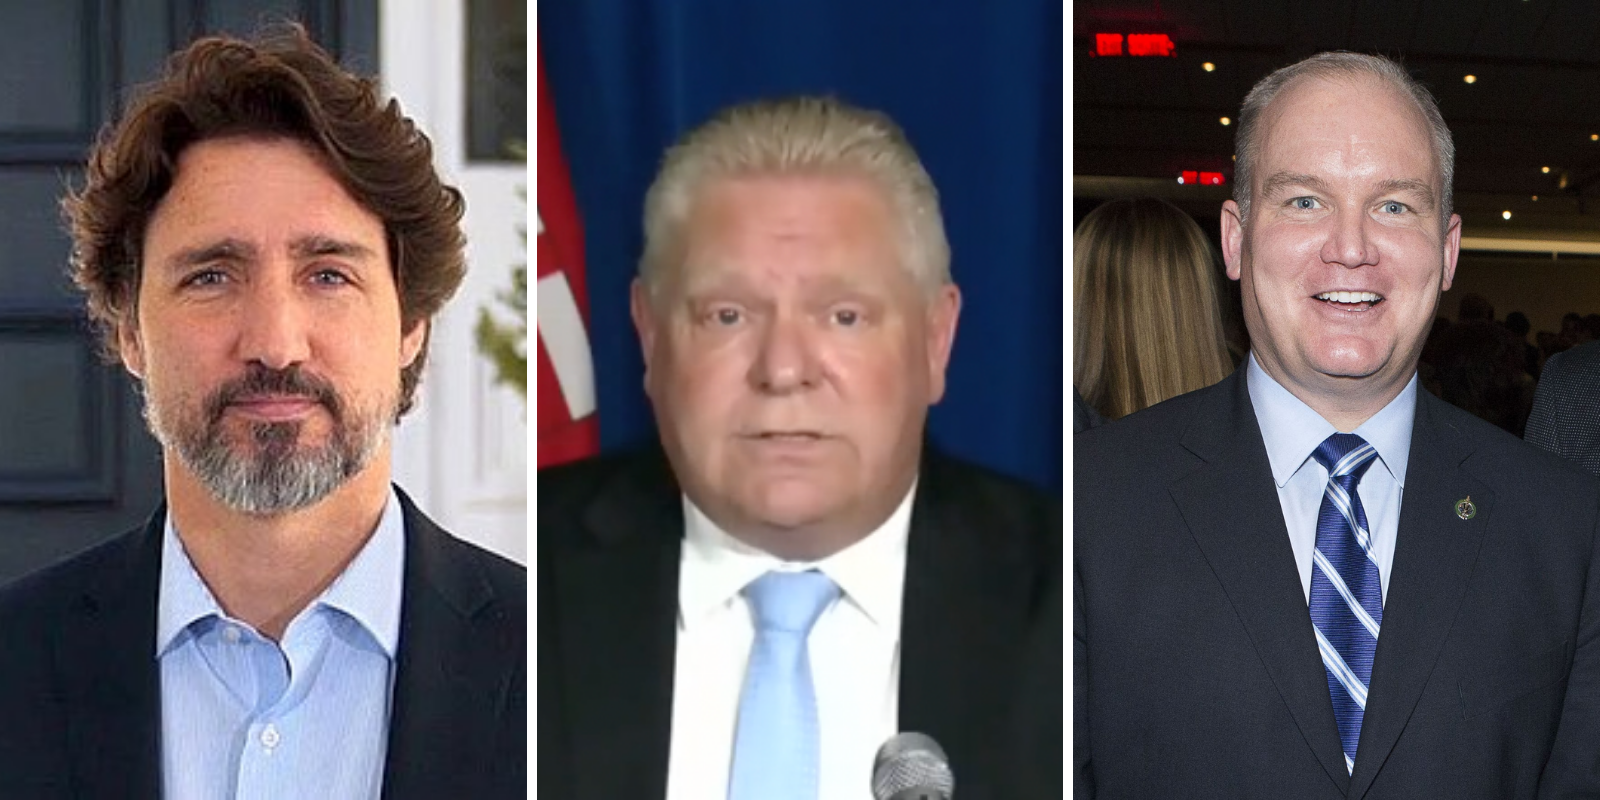 O'Toole, Tory and Ford condemn anti-Semitic violence in Toronto, Trudeau condemns violence, anti-Semitism and Islamophobia